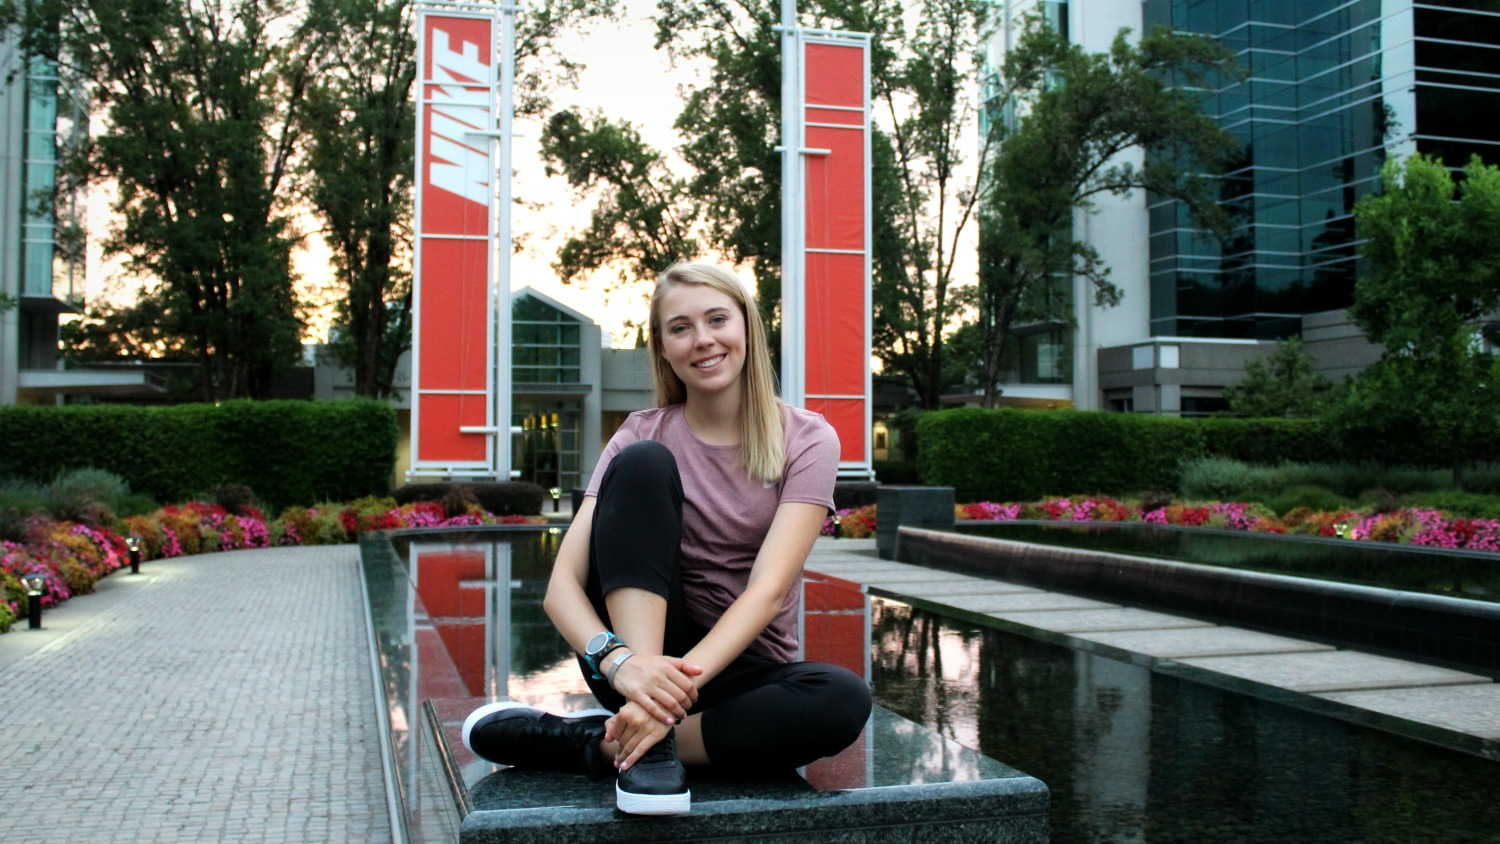 NC State College of Textiles TE major Carmen Davis sits in front of Nike signs